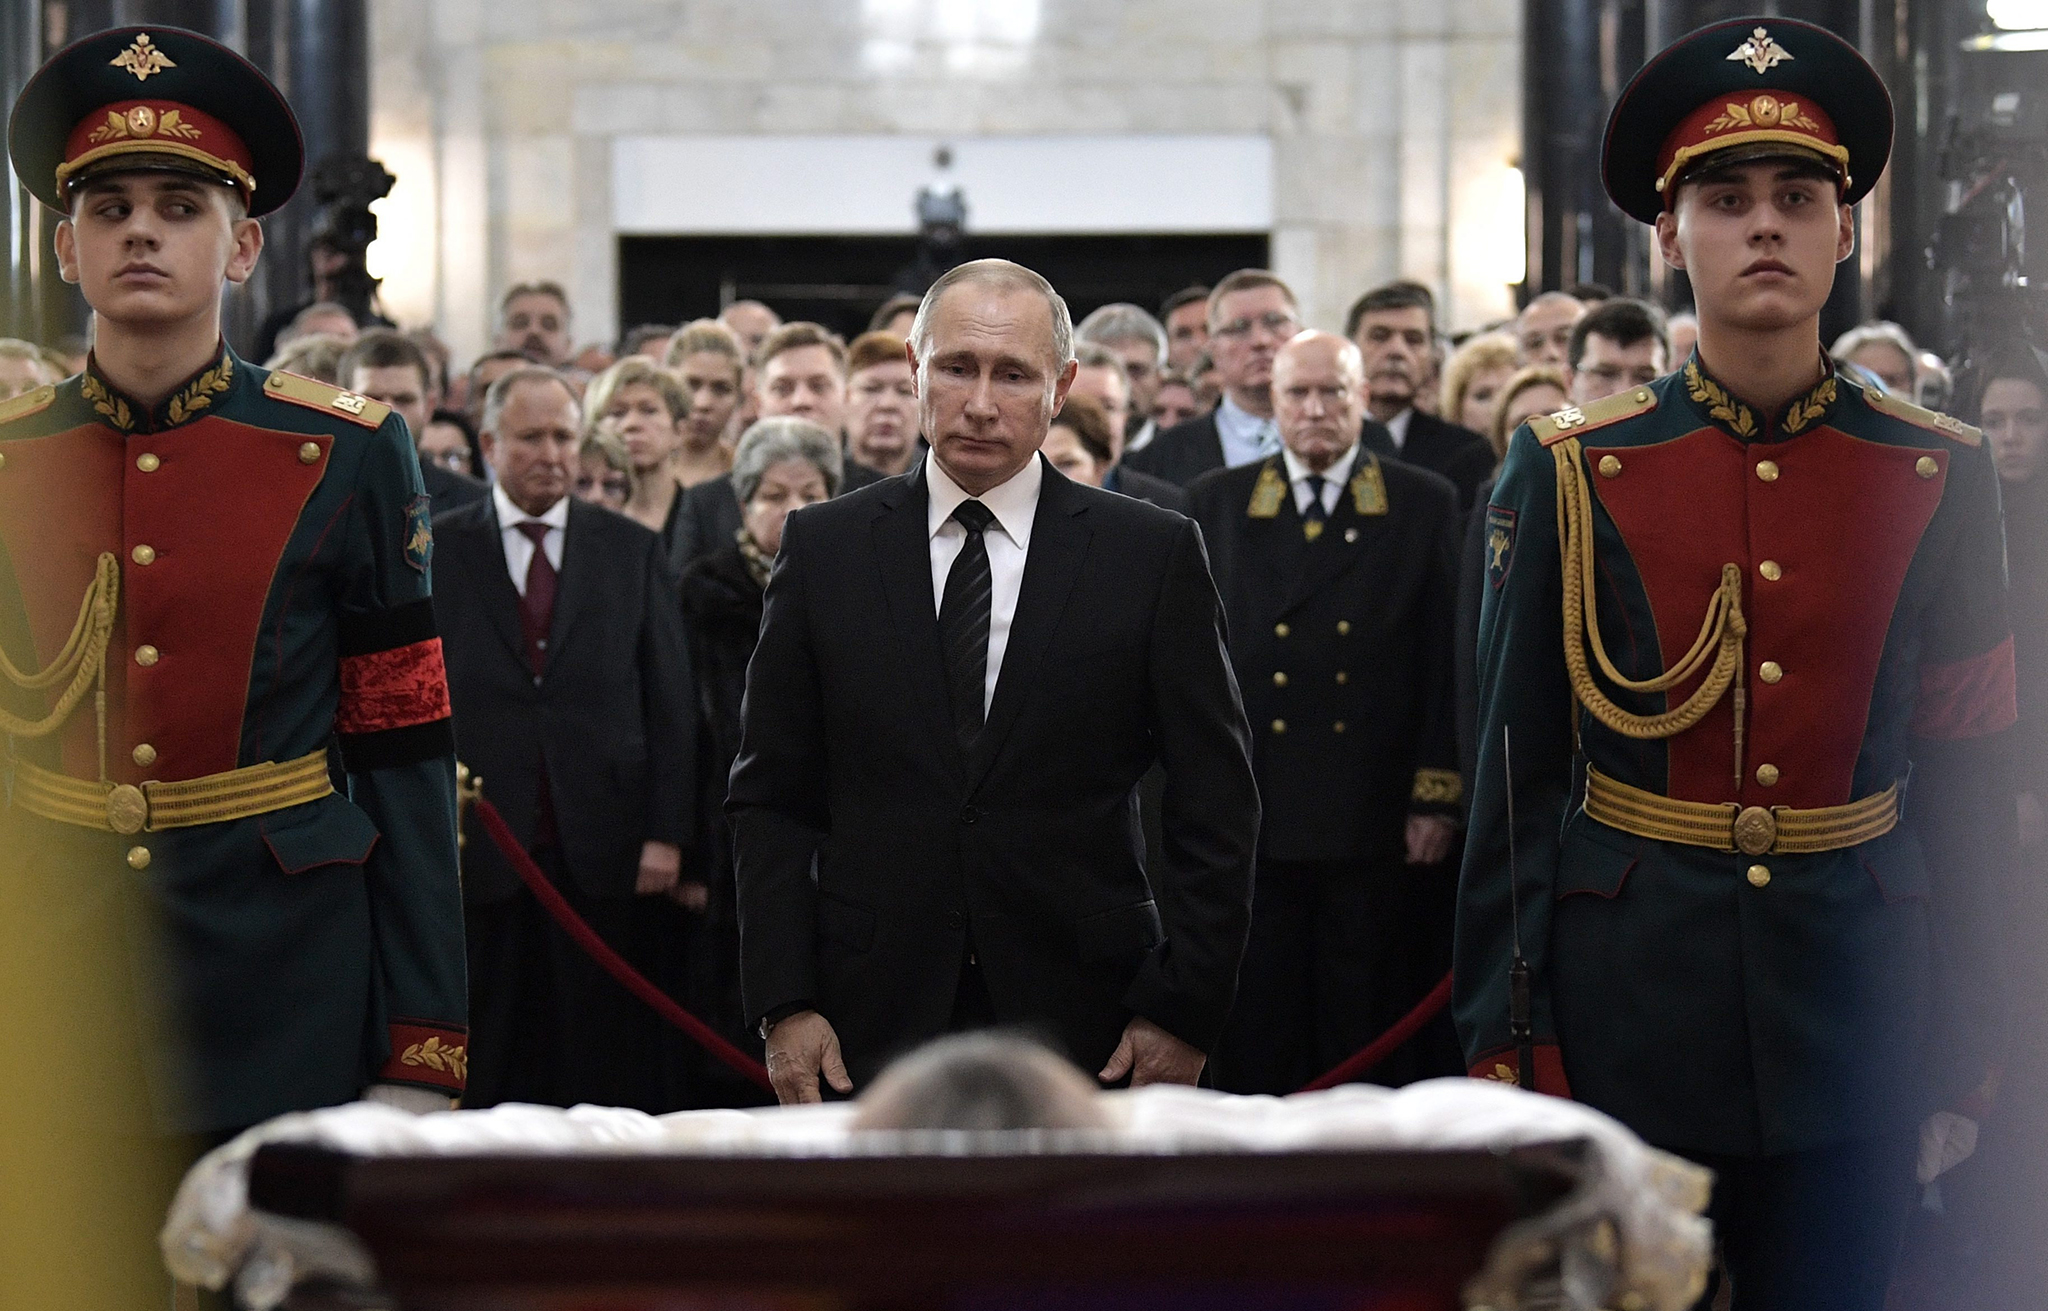 epa05685384 Russian President Vladimir Putin (C) pays last respects at the coffin of killed Russian ambassador to Turkey, Andrey Karlov, during a memorial service for Andrey Karlov at the Russian Foreign Ministry building in Moscow, Russia, 22 December 2016. Russia's ambassador to Turkey, Karlov was assasinated on 19 December during a culutural event at an art gallery in the Turkish capital by Turkish policeman Mevlut Mert Altintas, 22, who had been serving in Ankara's riot police for two years.  EPA/ALEXEY NIKOLSKY / SPUTNIK